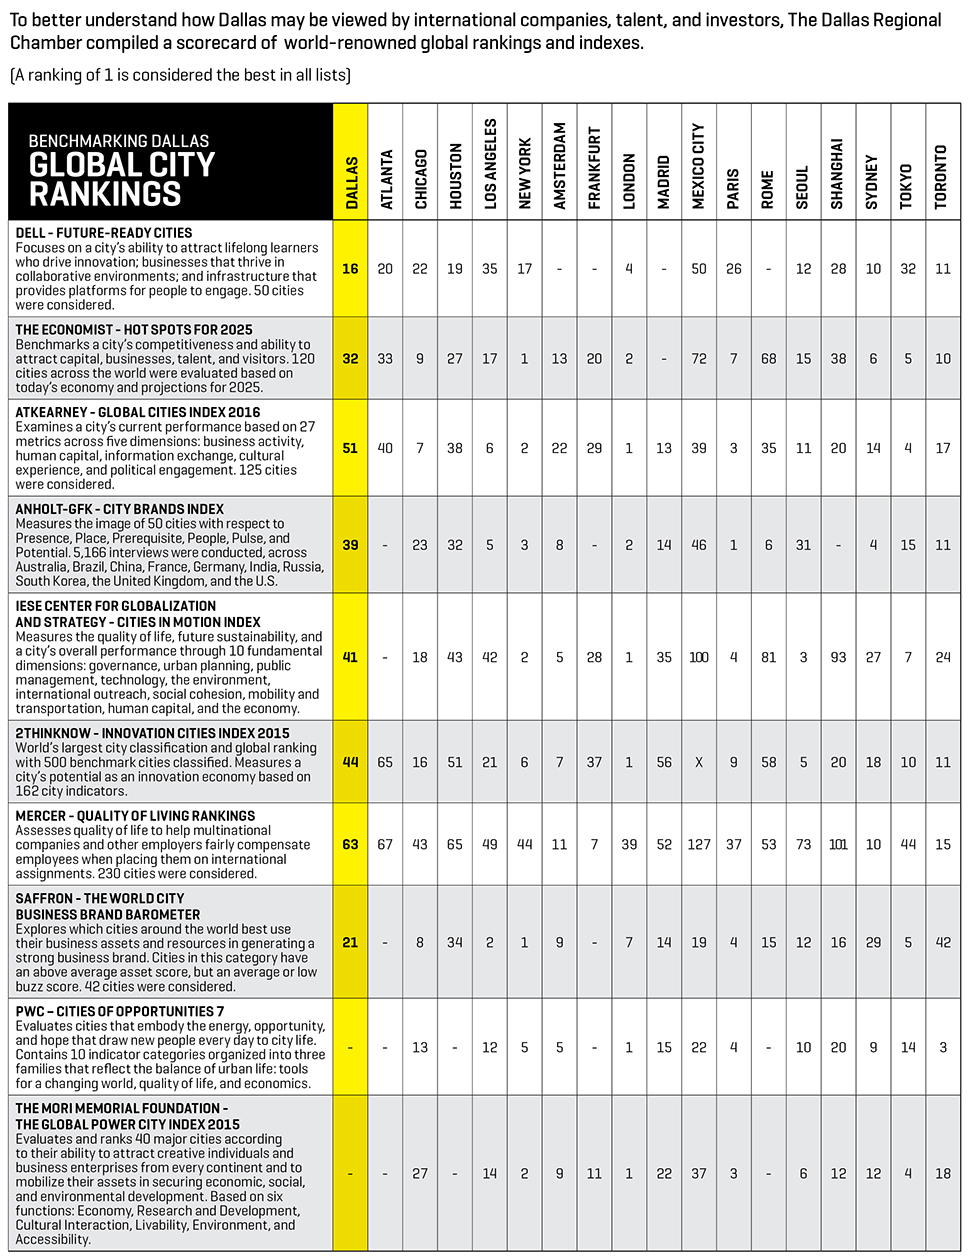 Global City Rankings, The Dallas Regional Chamber